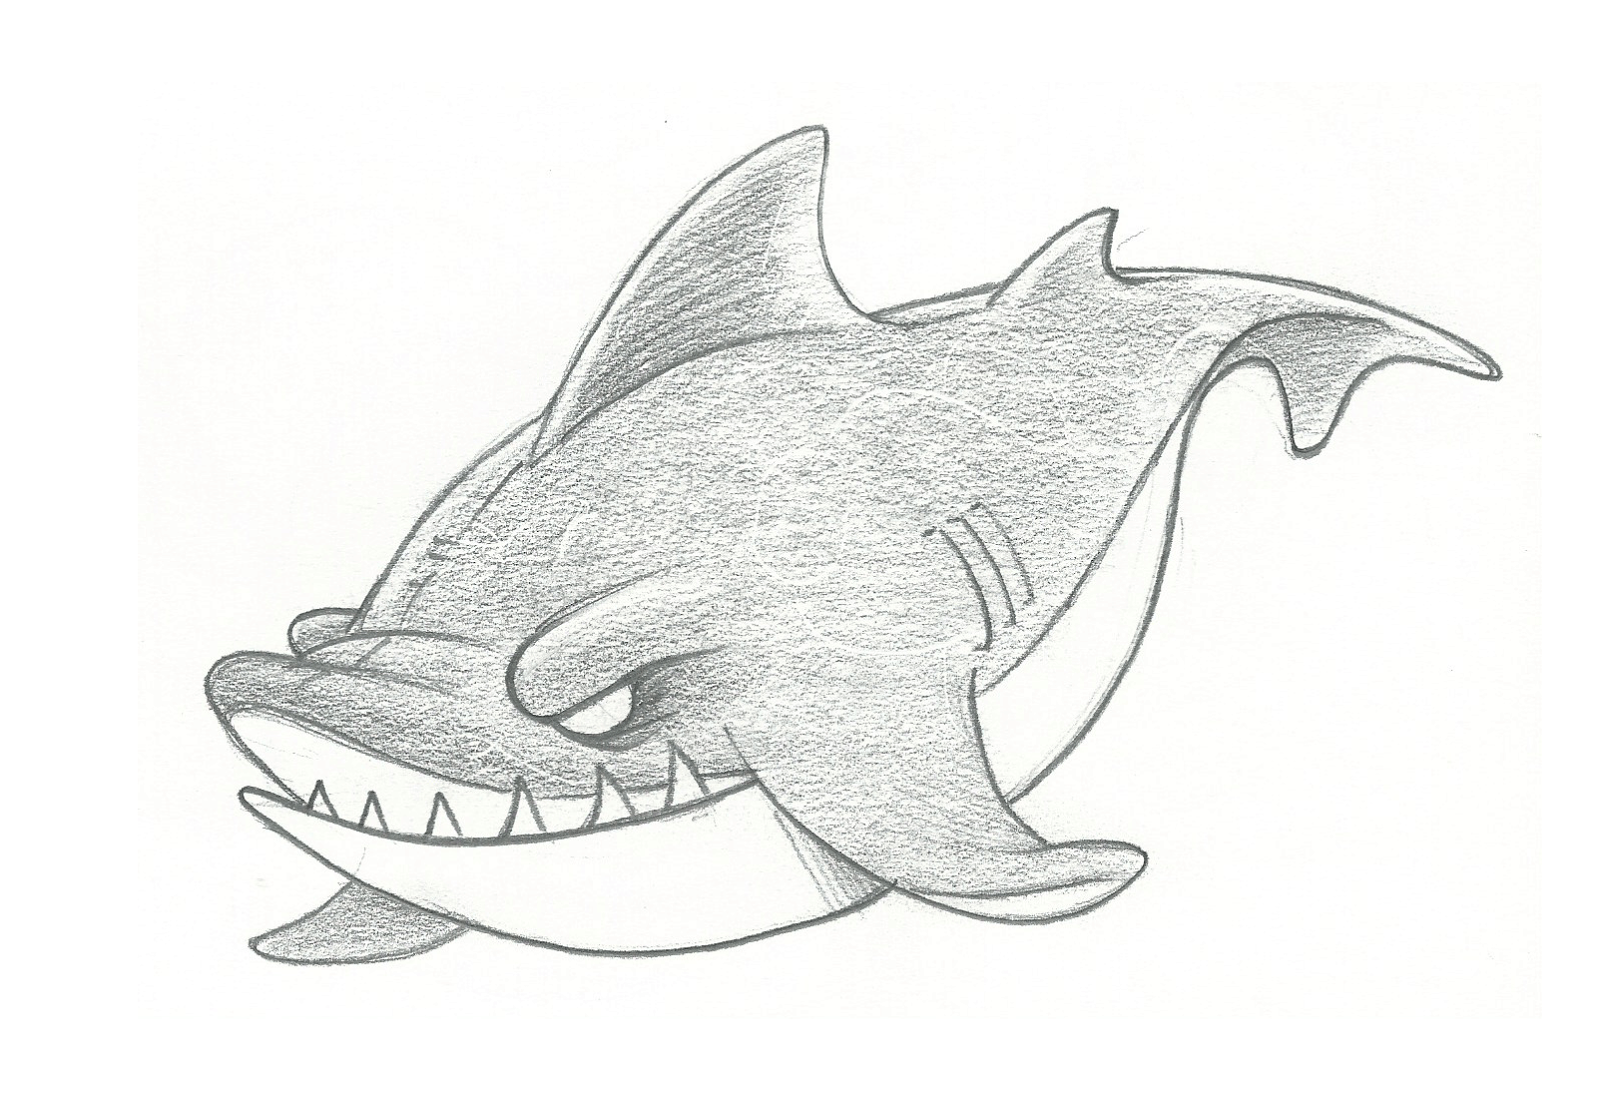 Gallery For gt Cool Shark Drawing In Pencil